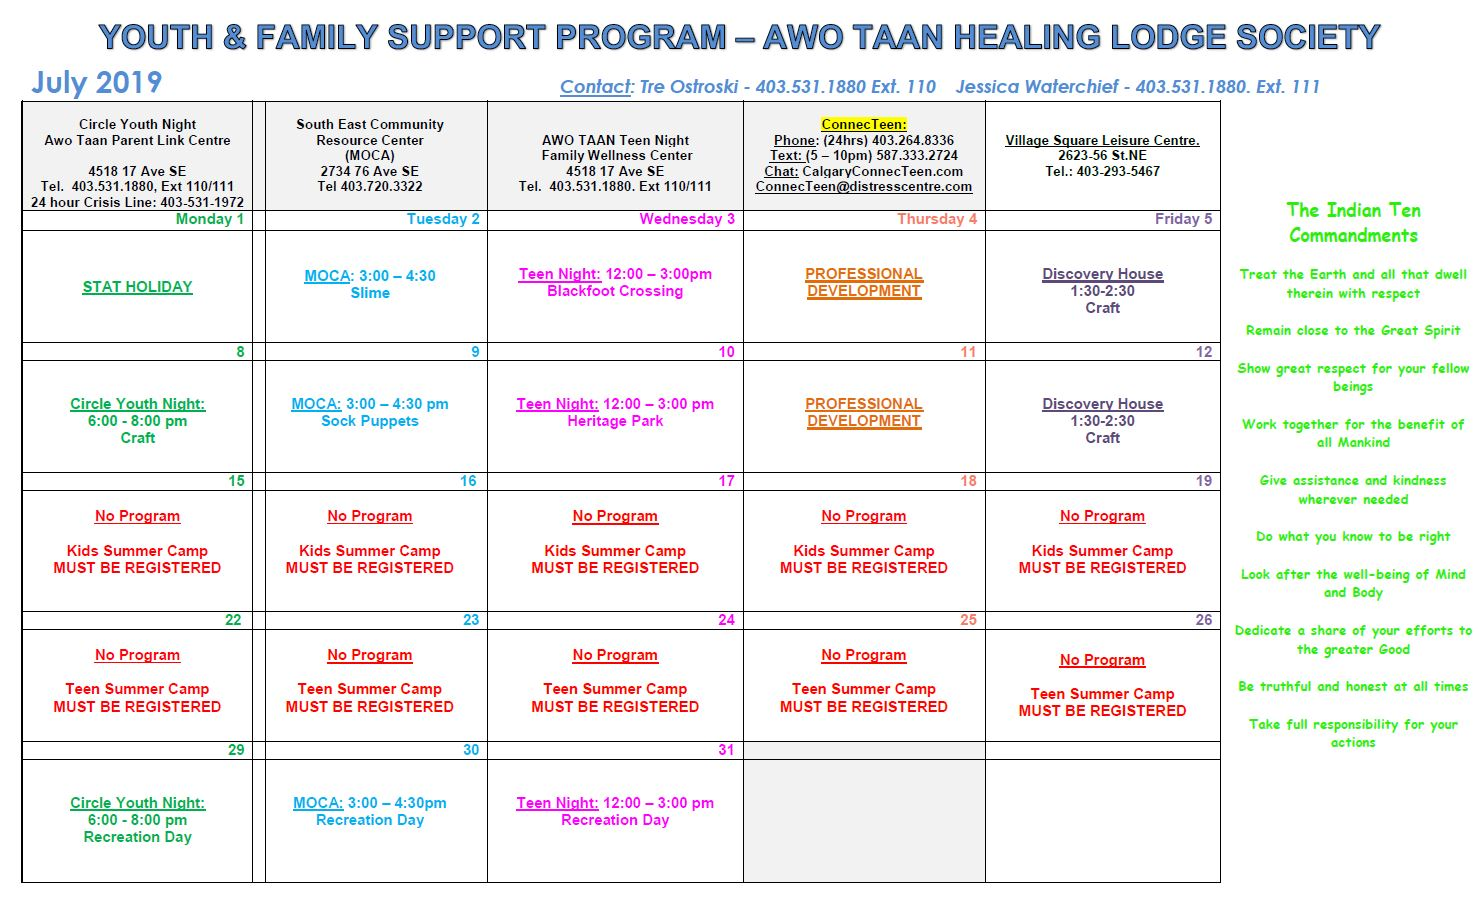 Awo Taan Healing Lodge Society, Youth & Family Support Program Calendar of Events July 2019